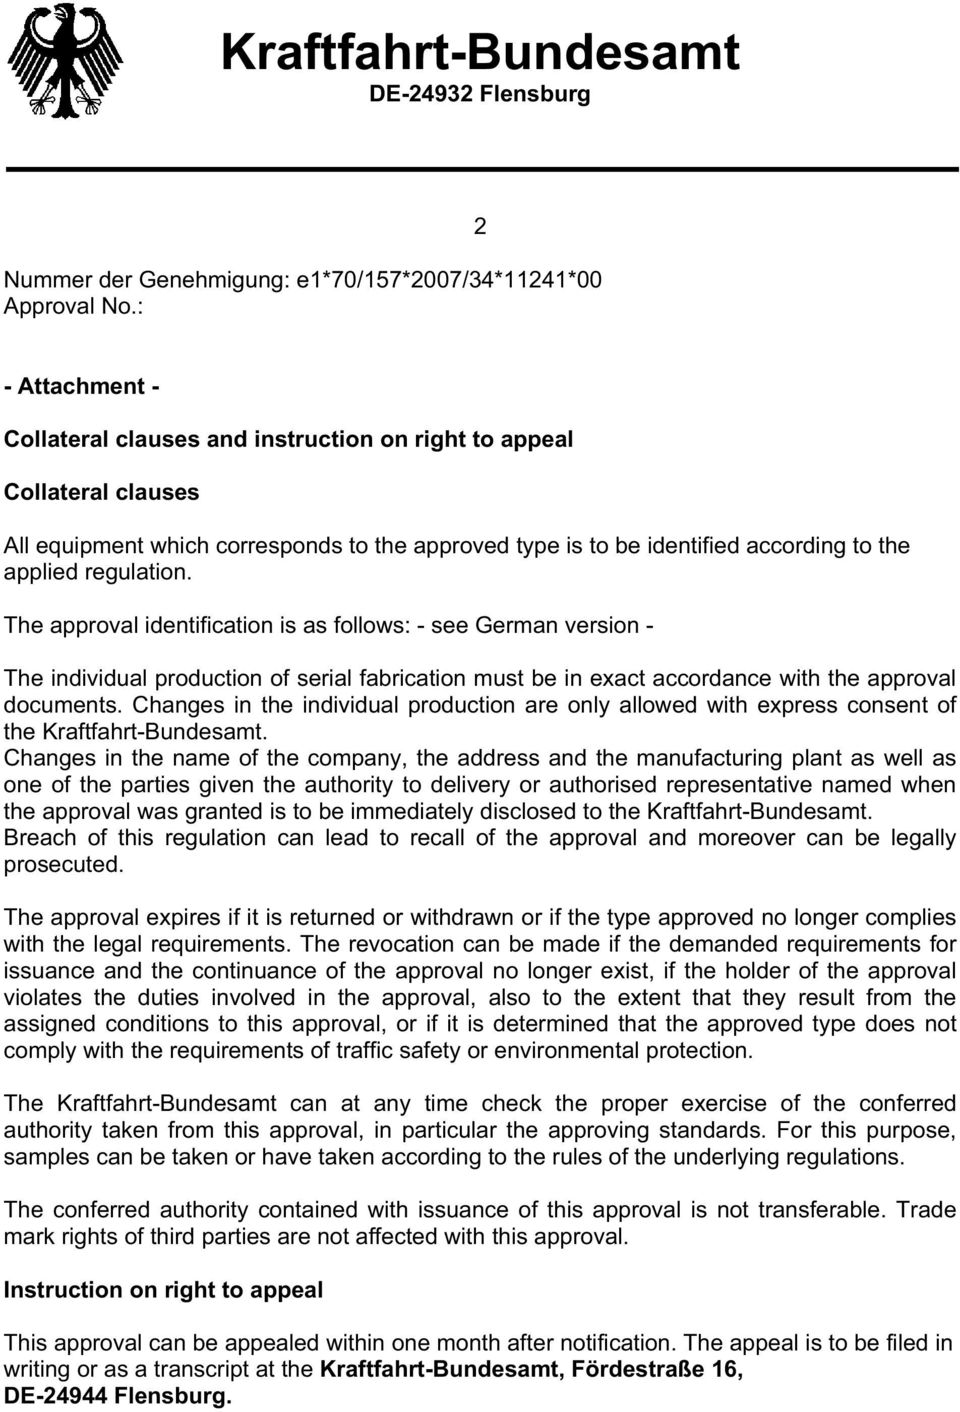 The approval identification is as follows - see German version - The individual production of serial fabrication must be in exact accordance with the approval documents.